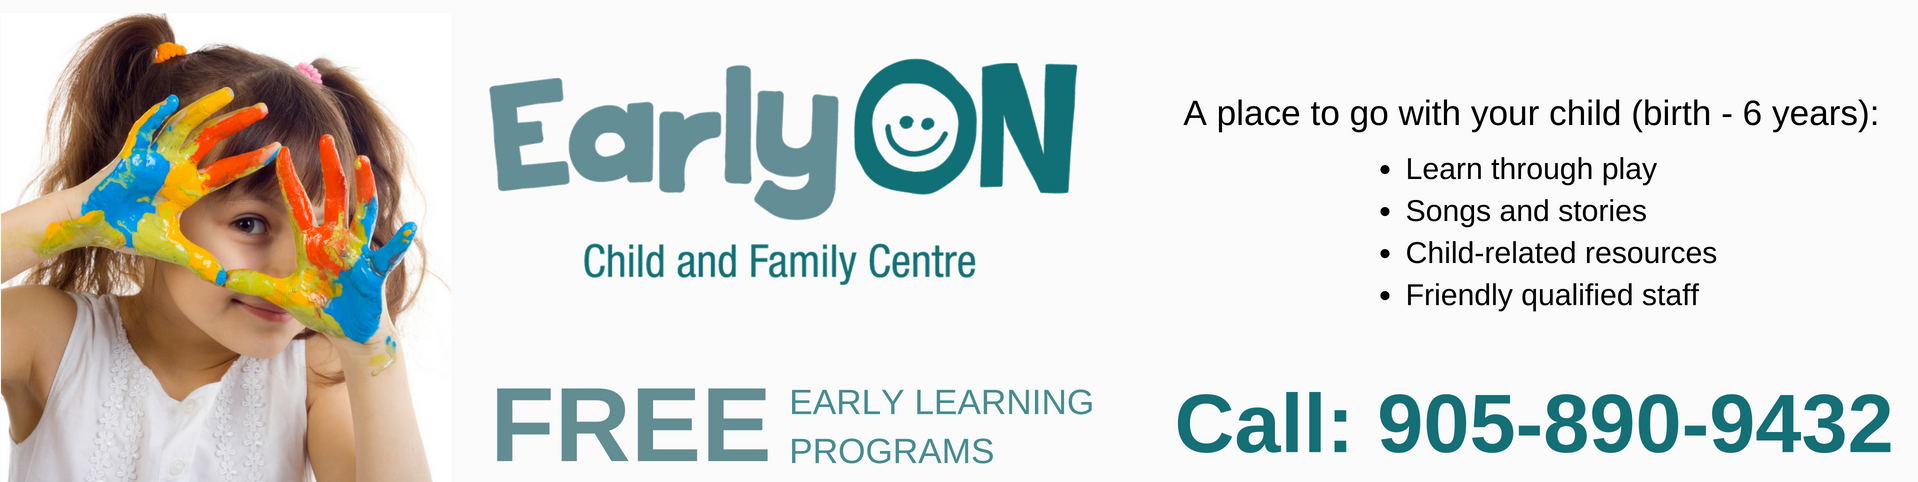 Early Years Programs